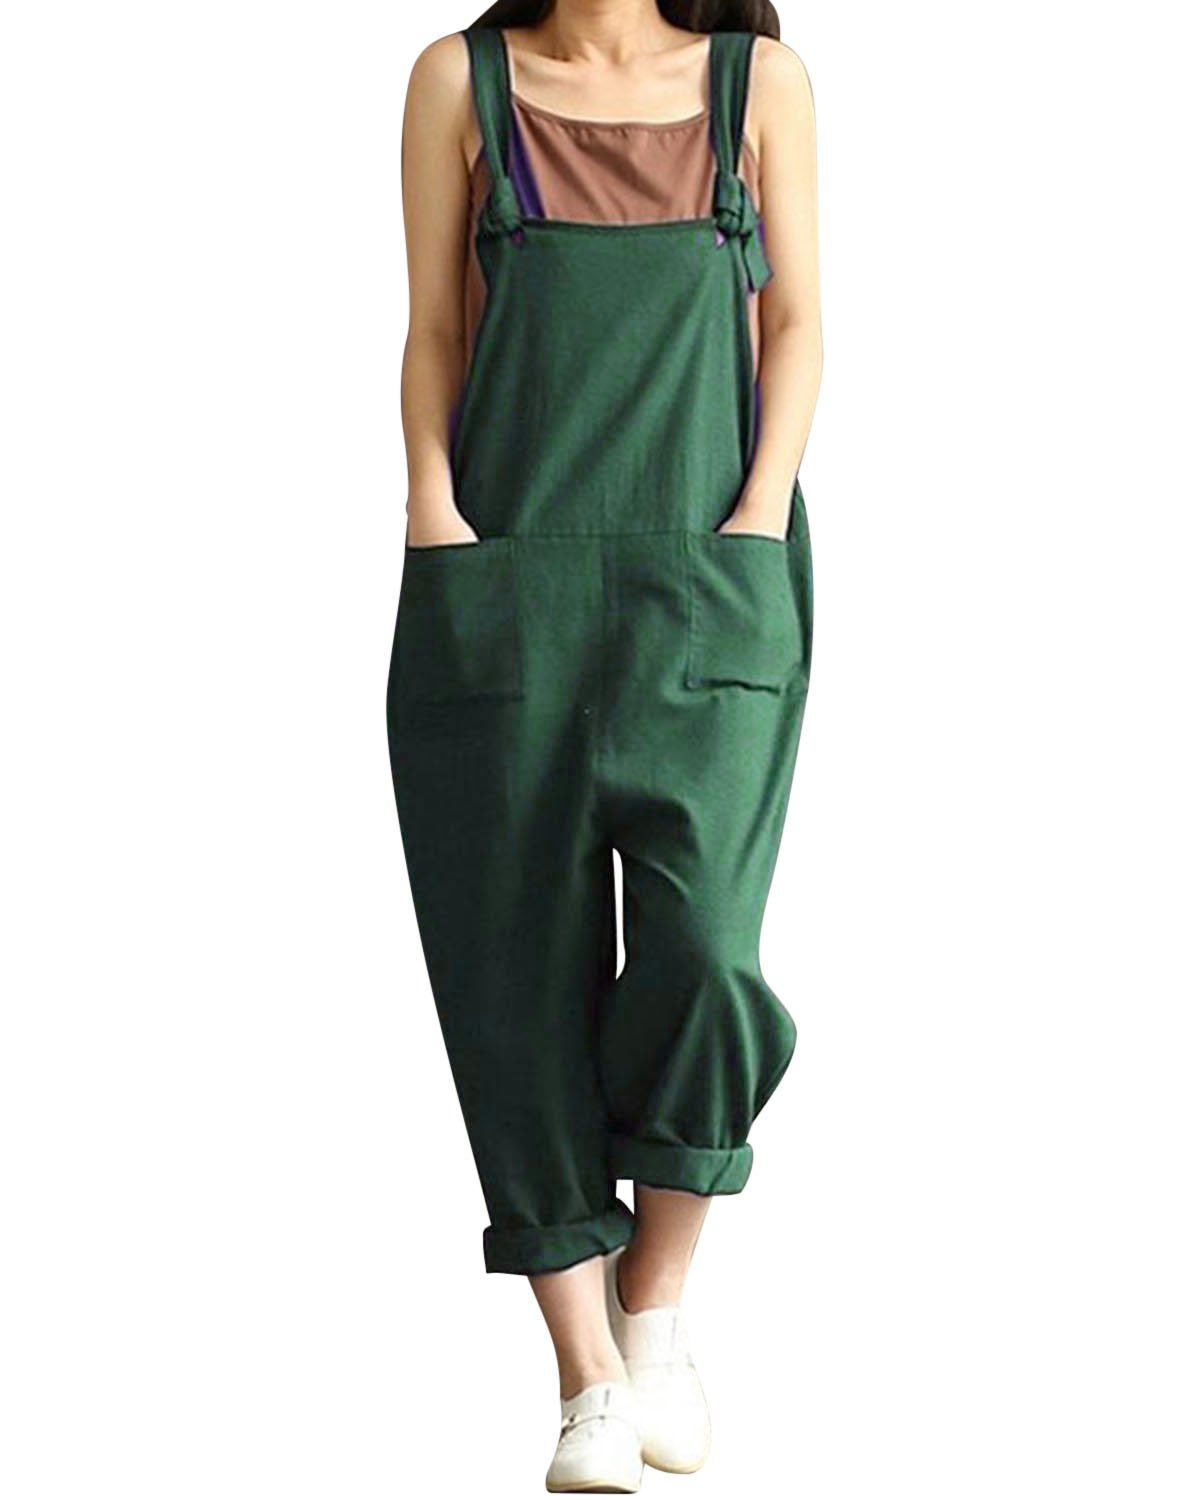 Womens Cotton Retro Loose Wide Leg Dungarees Overalls Baggy Strap Sleeveless Jumpsuits Bib Pants Casual Rompers Loose Sleeveless Long Playsuit Dungarees